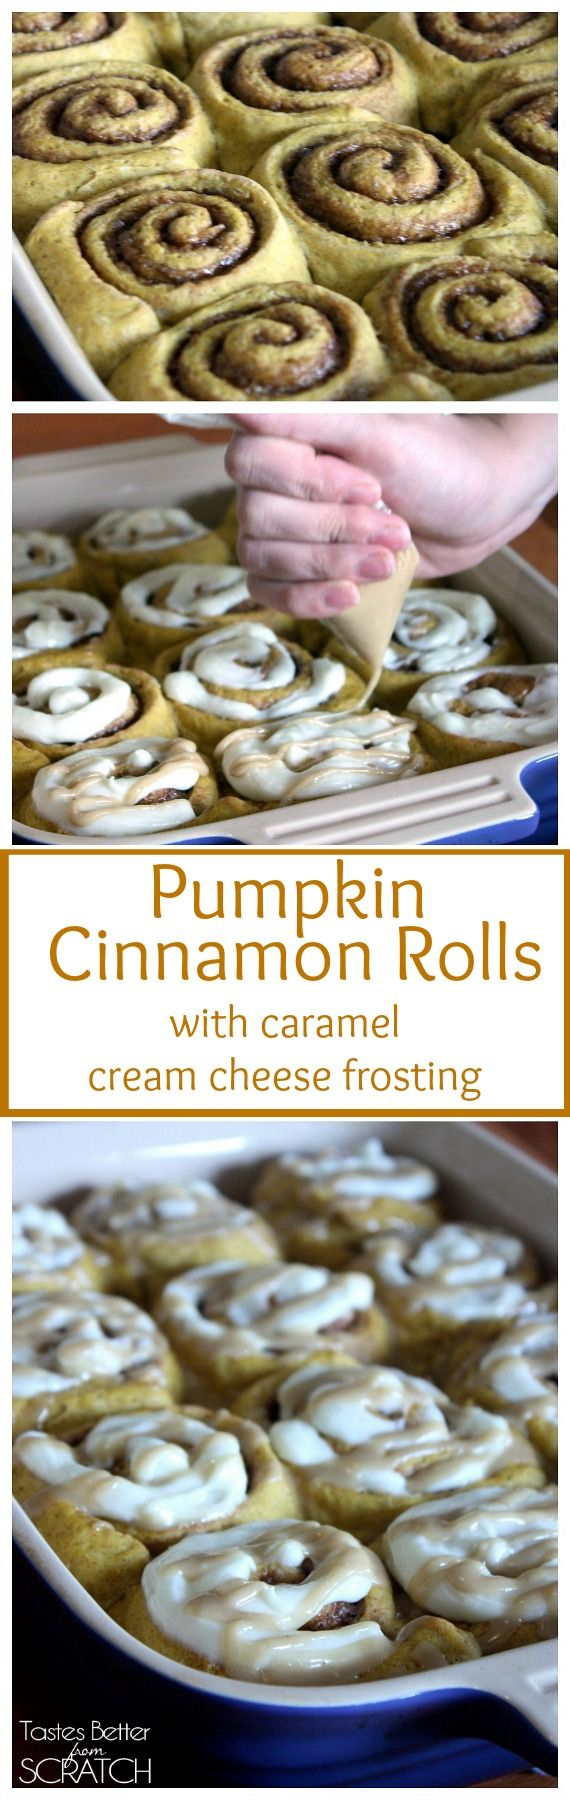 These Pumpkin Cinnamon Rolls with Cream Cheese Frosting are to die for ...